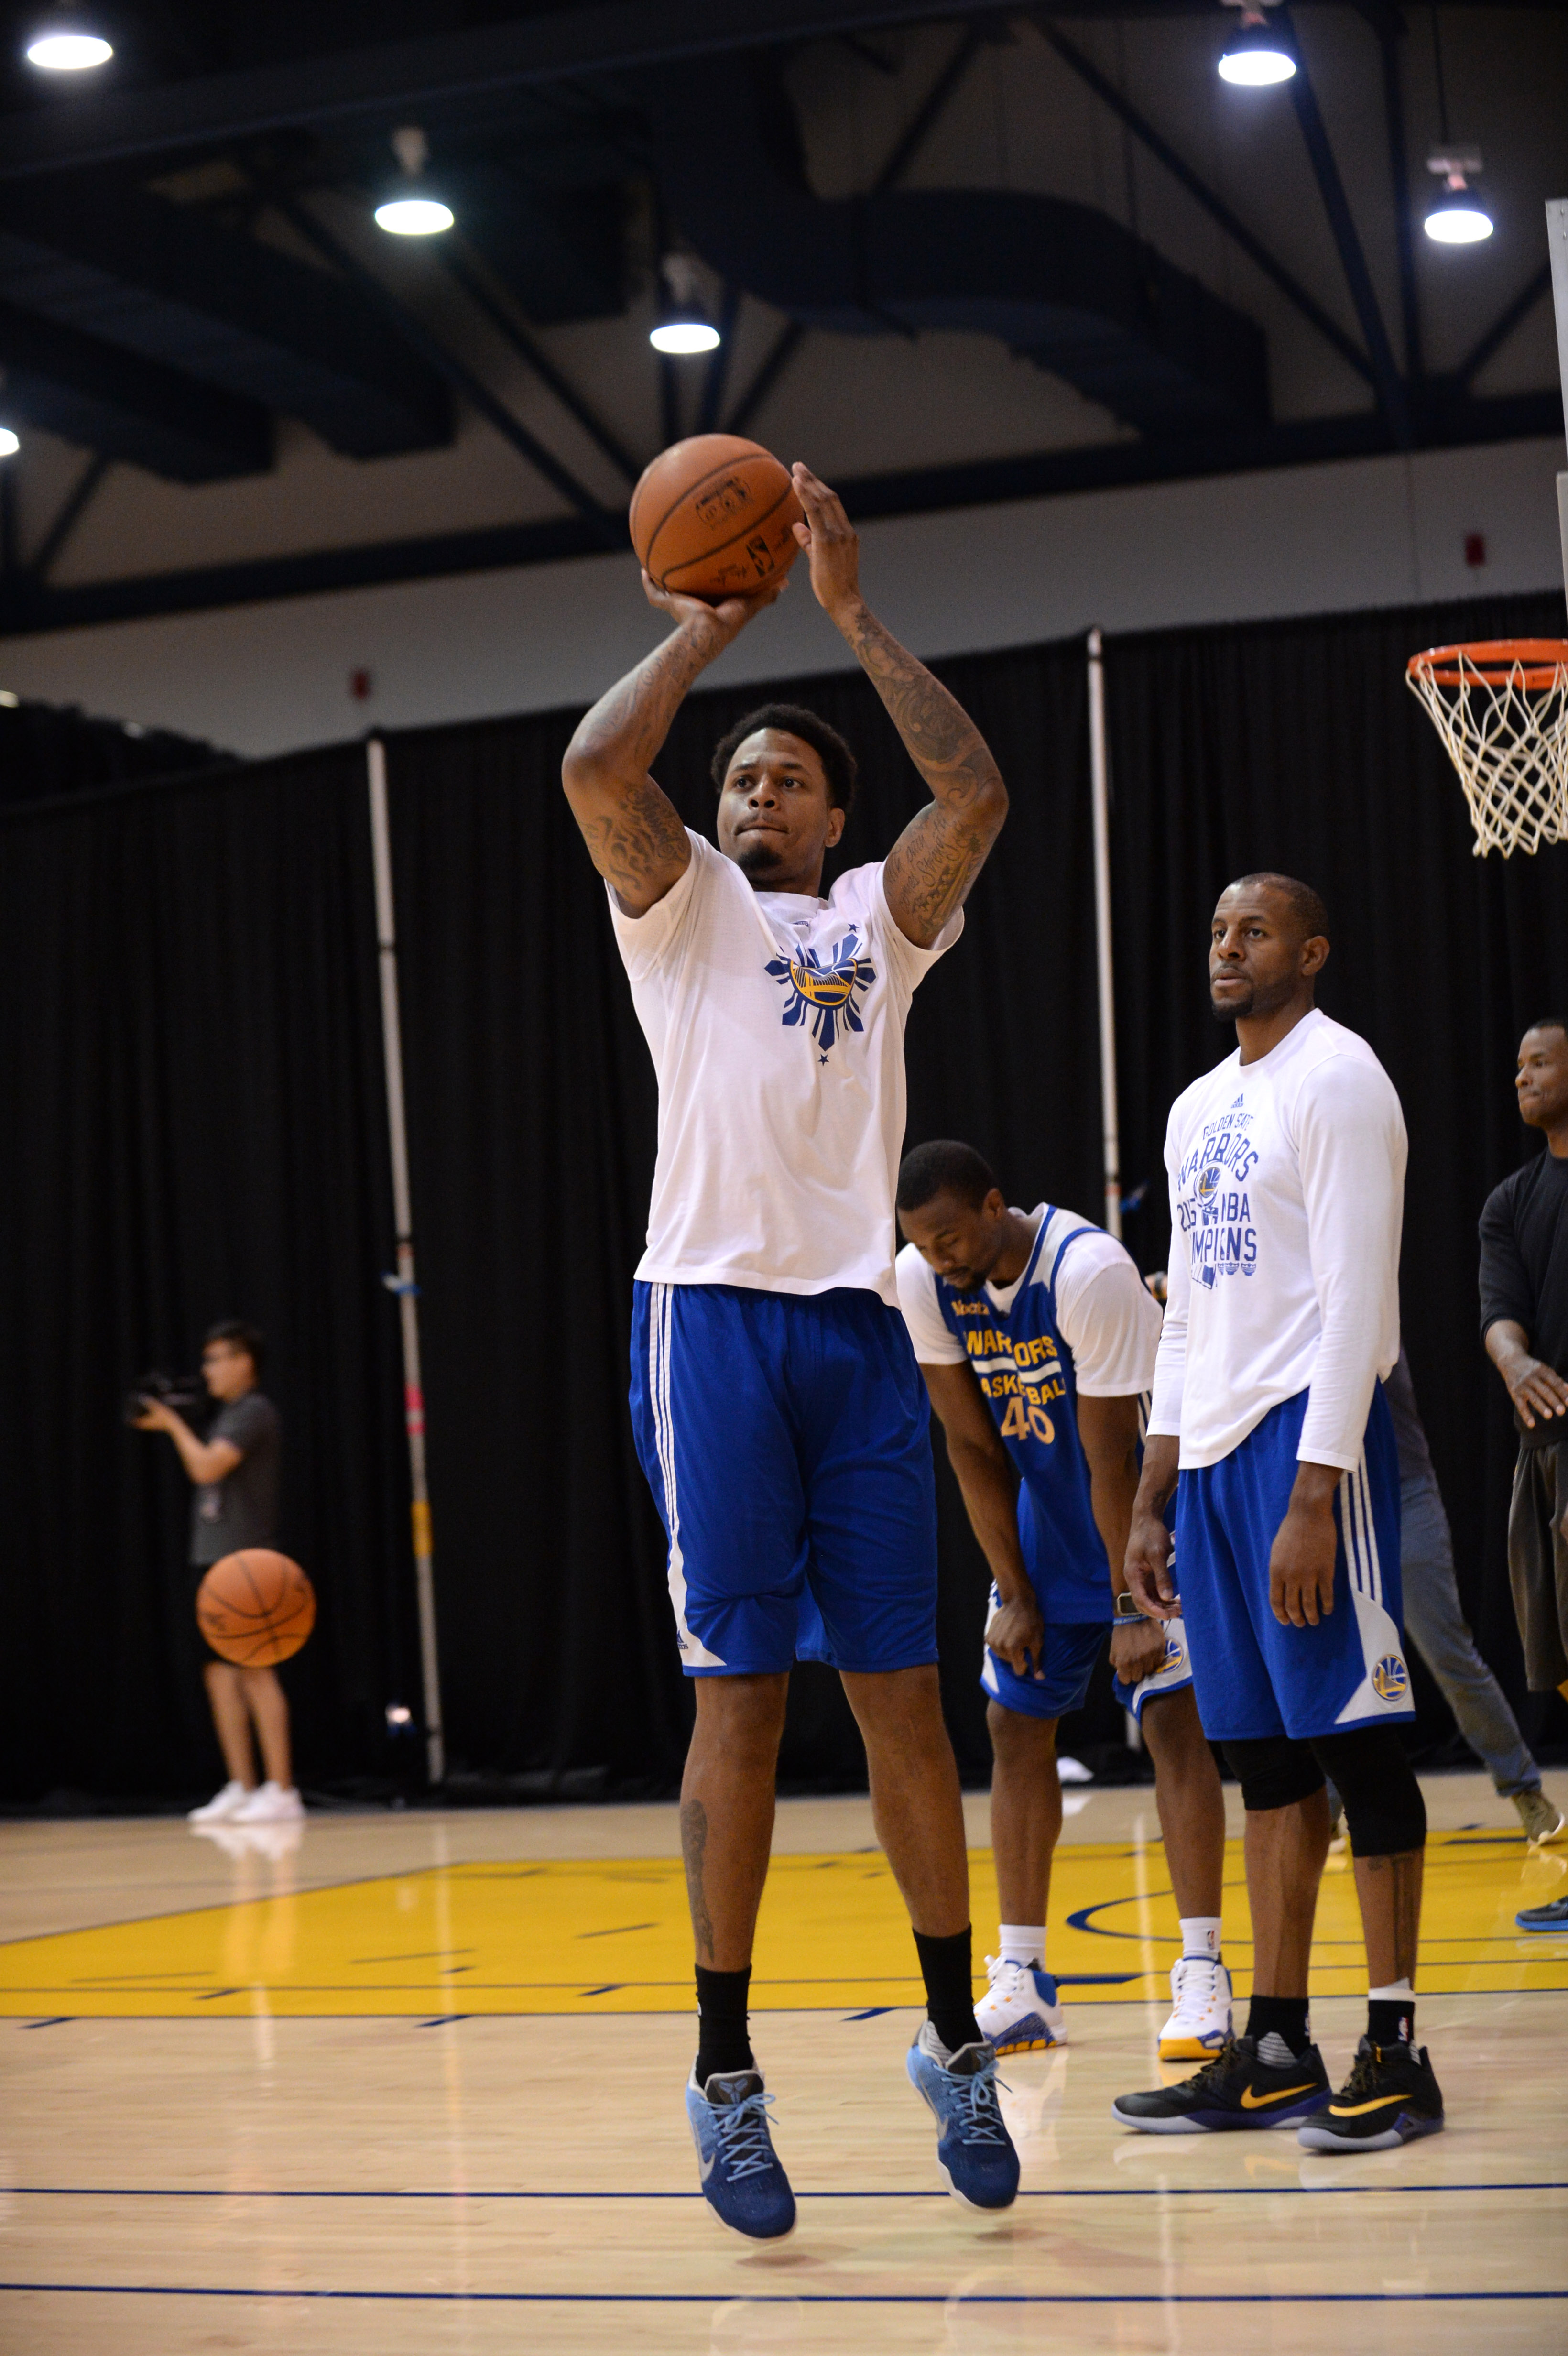 OAKLAND, CA - JUNE 12: Brandon Rush of the Golden State Warriors shoots during practice and media availability as part of the 2016 NBA Finals on June 12, 2016 at Oakland Convention Center in Oakland, California. (Photo by Noah Graham/NBAE via Getty Images